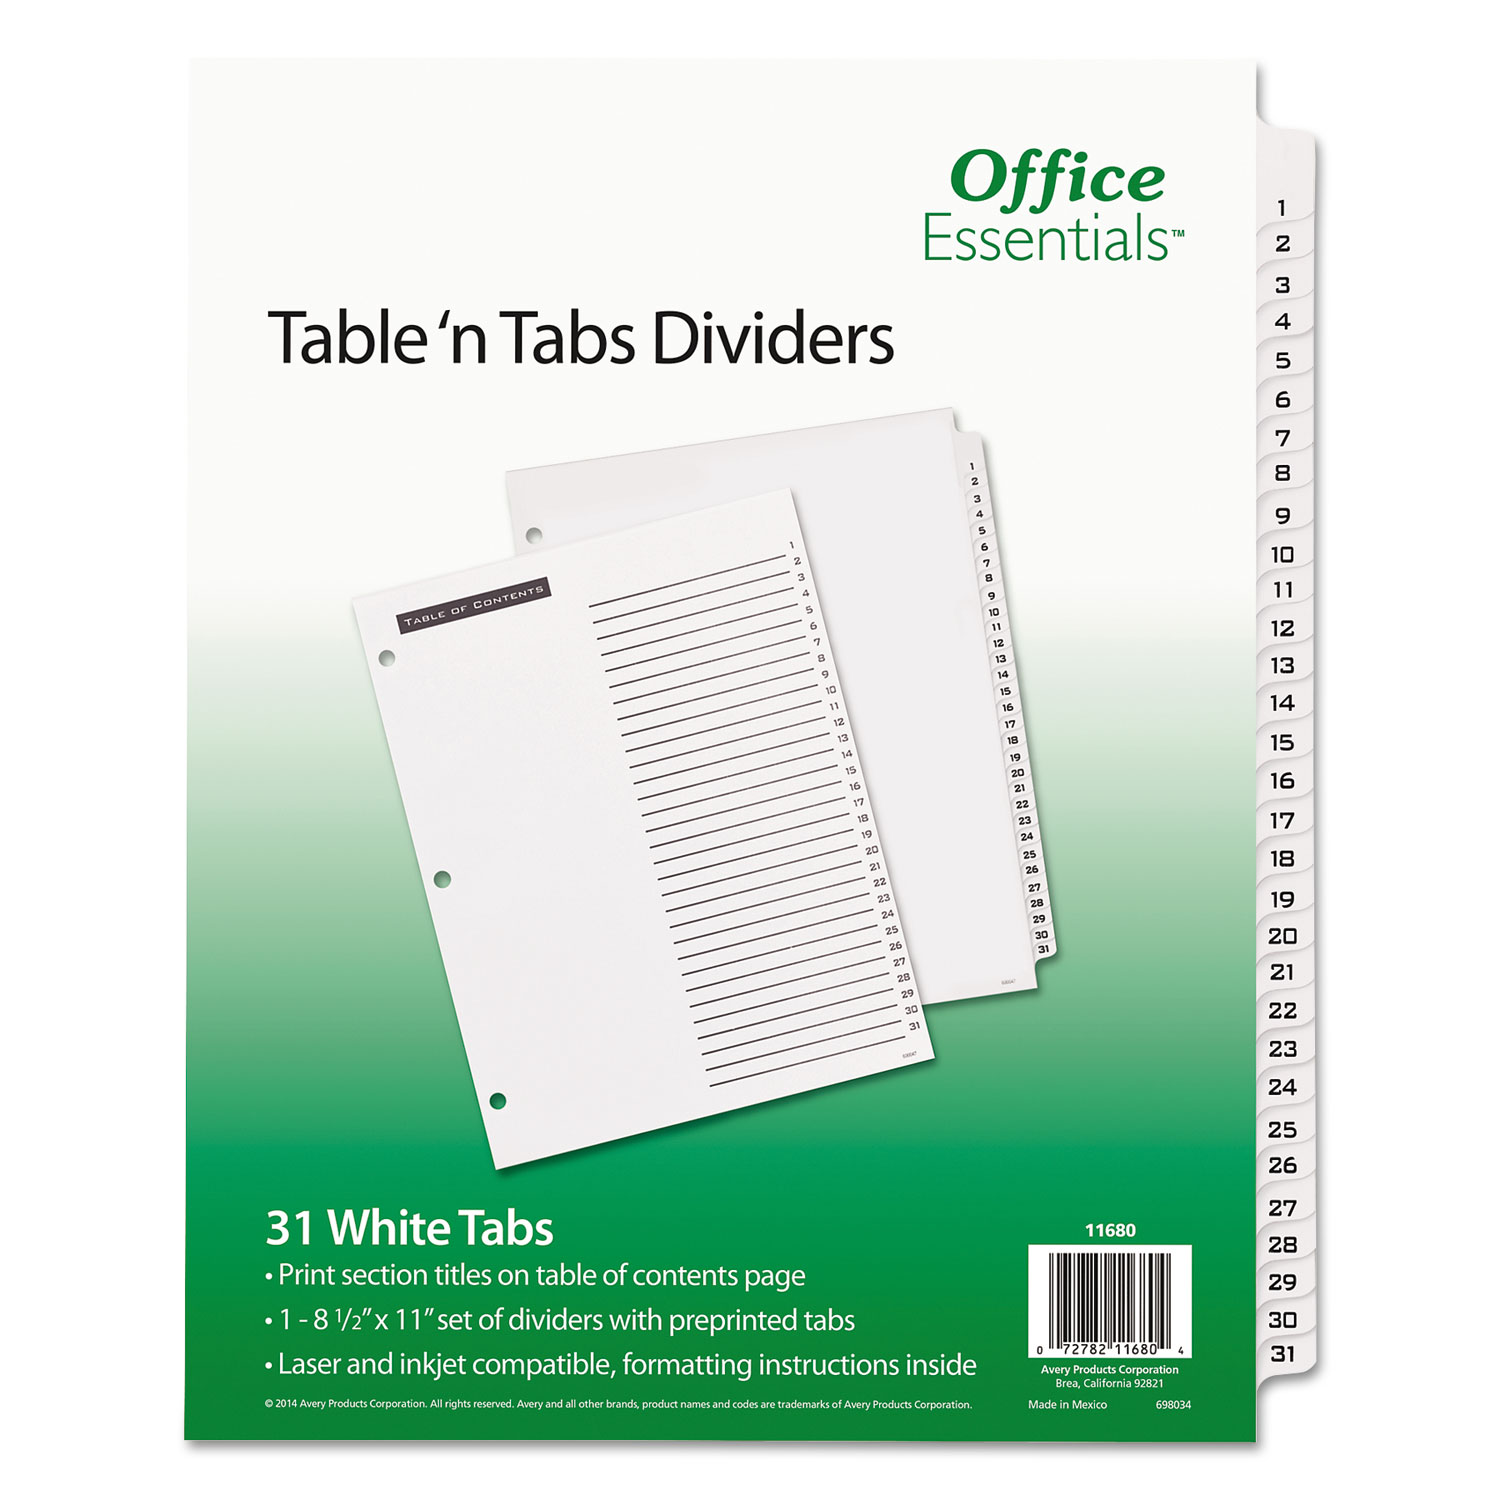 "Office Essentials  Table 'n Tabs  Dividers, 8-1/2"" x 11"", 1-31 Tab, White Tab, White Body, Laser/Inkjet, 1 Set/ST"